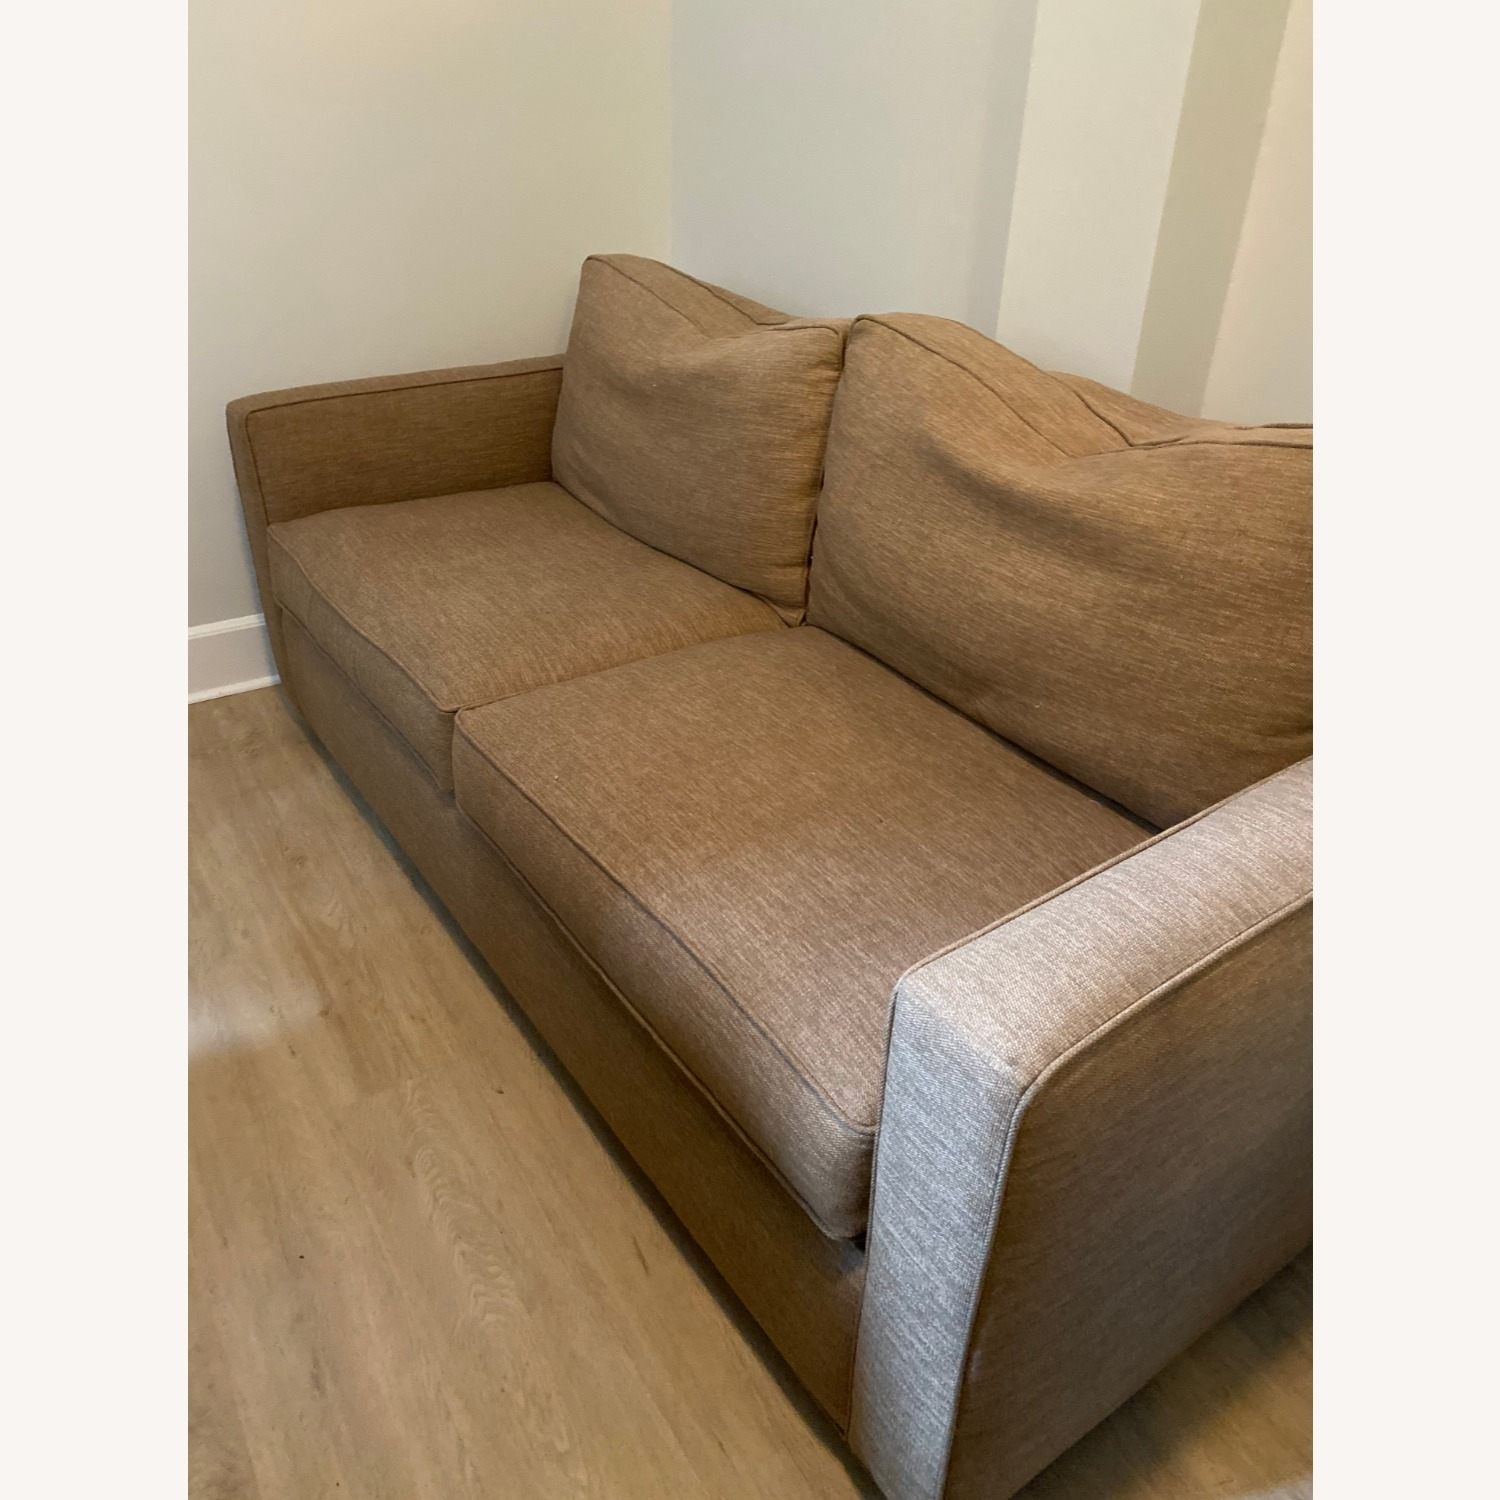 Crate & Barrel Davis Sofa - image-2